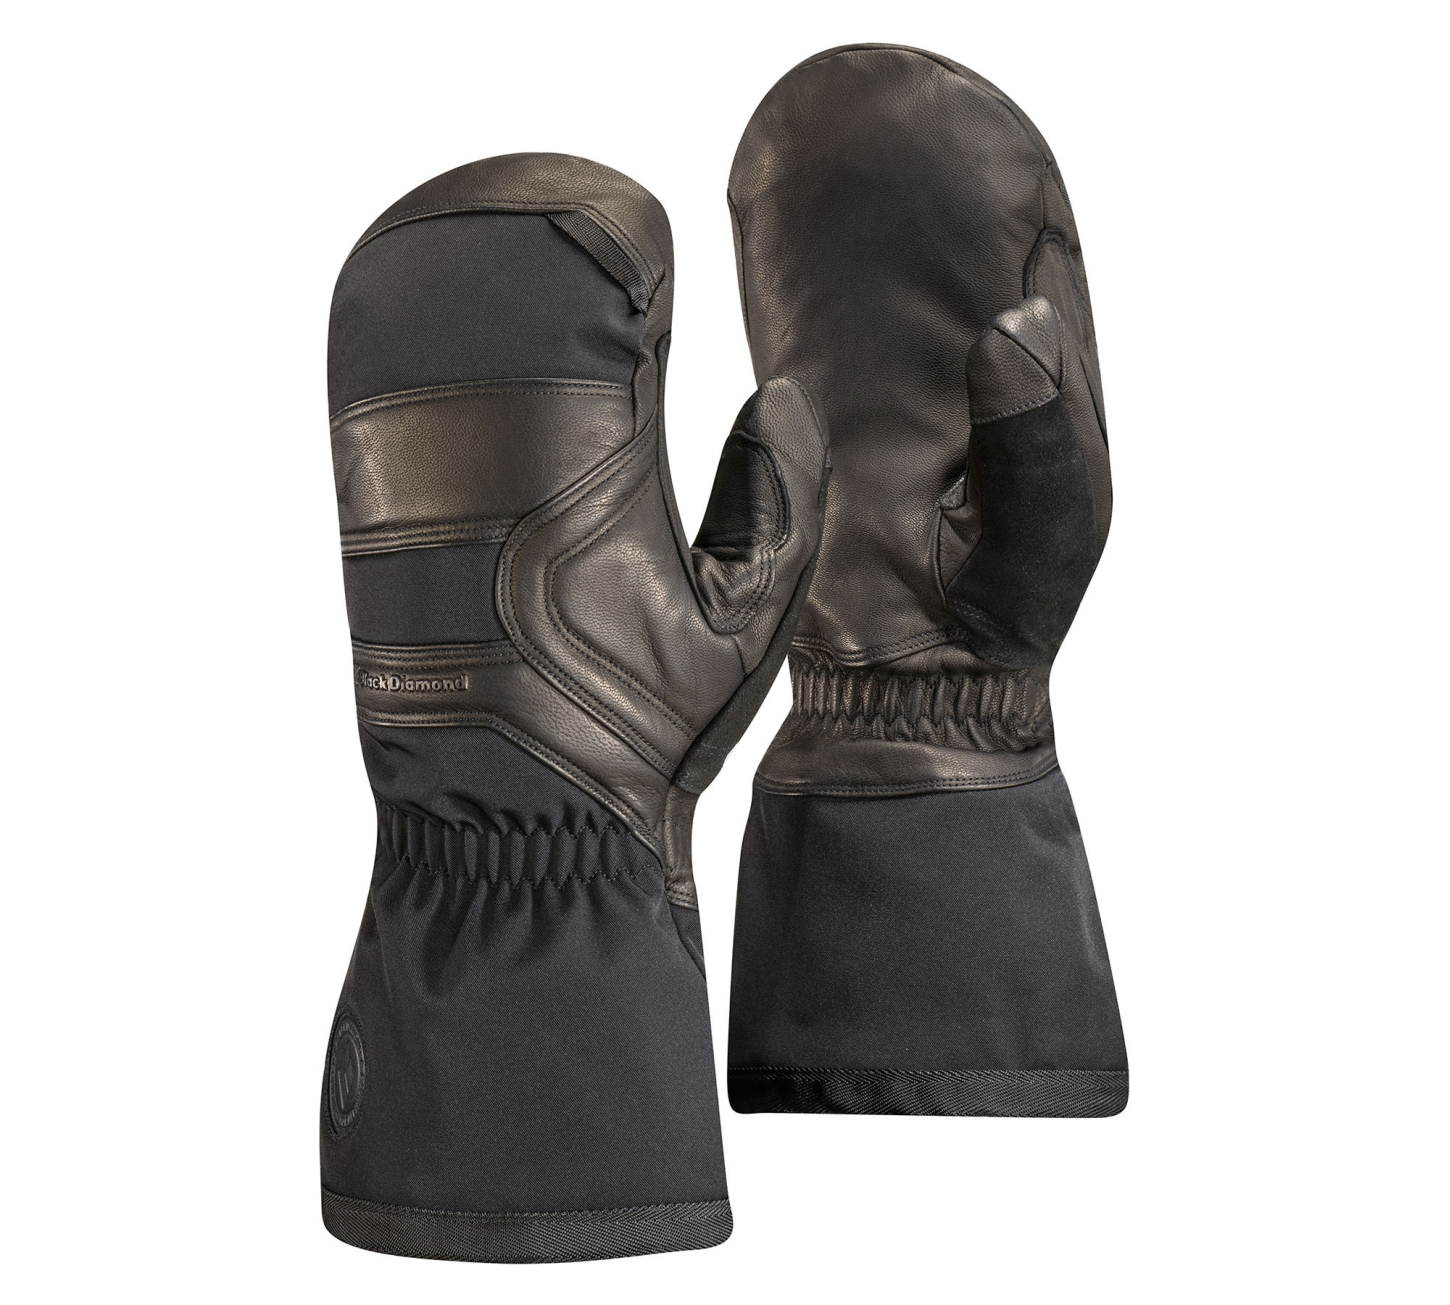 Black Diamond Crew Mitts Black-30